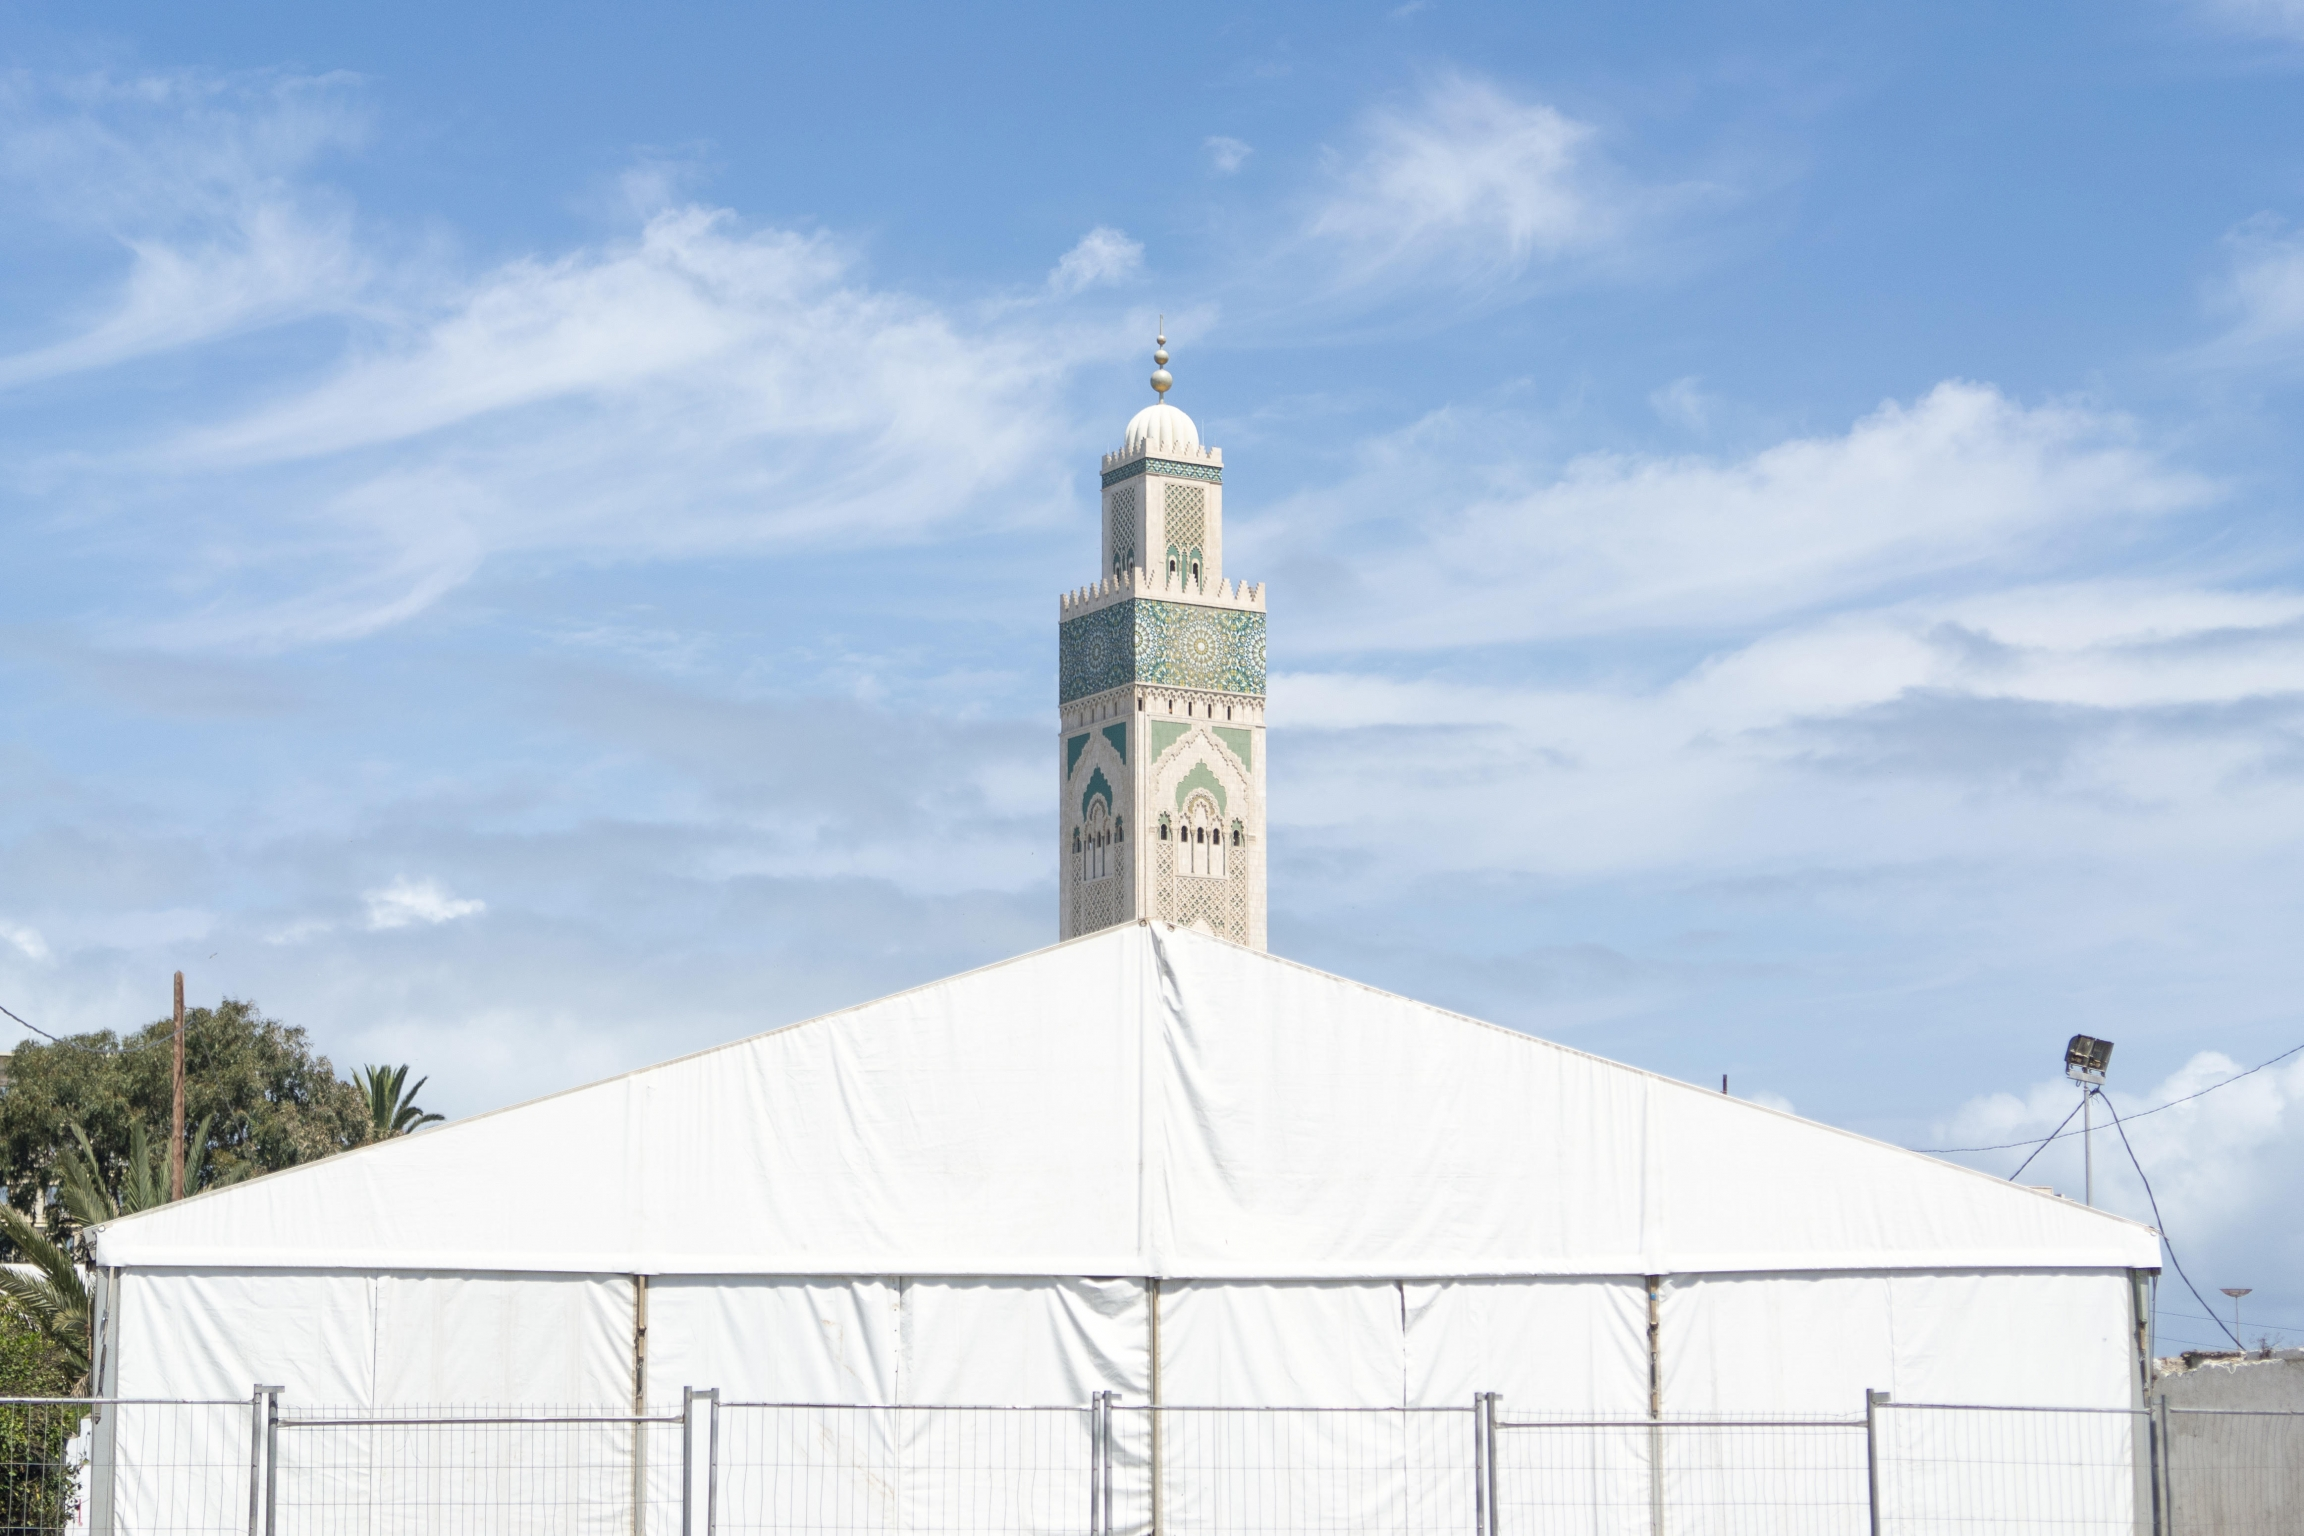 Authorities erected this tent for homeless people needing services during the lockdown. Behind it rises the minaret of the Hassan II mosque, which is now closed. Usually, Hassan II, Africa's biggest mosque, gets as many as 200,000 worshipers nightly durin